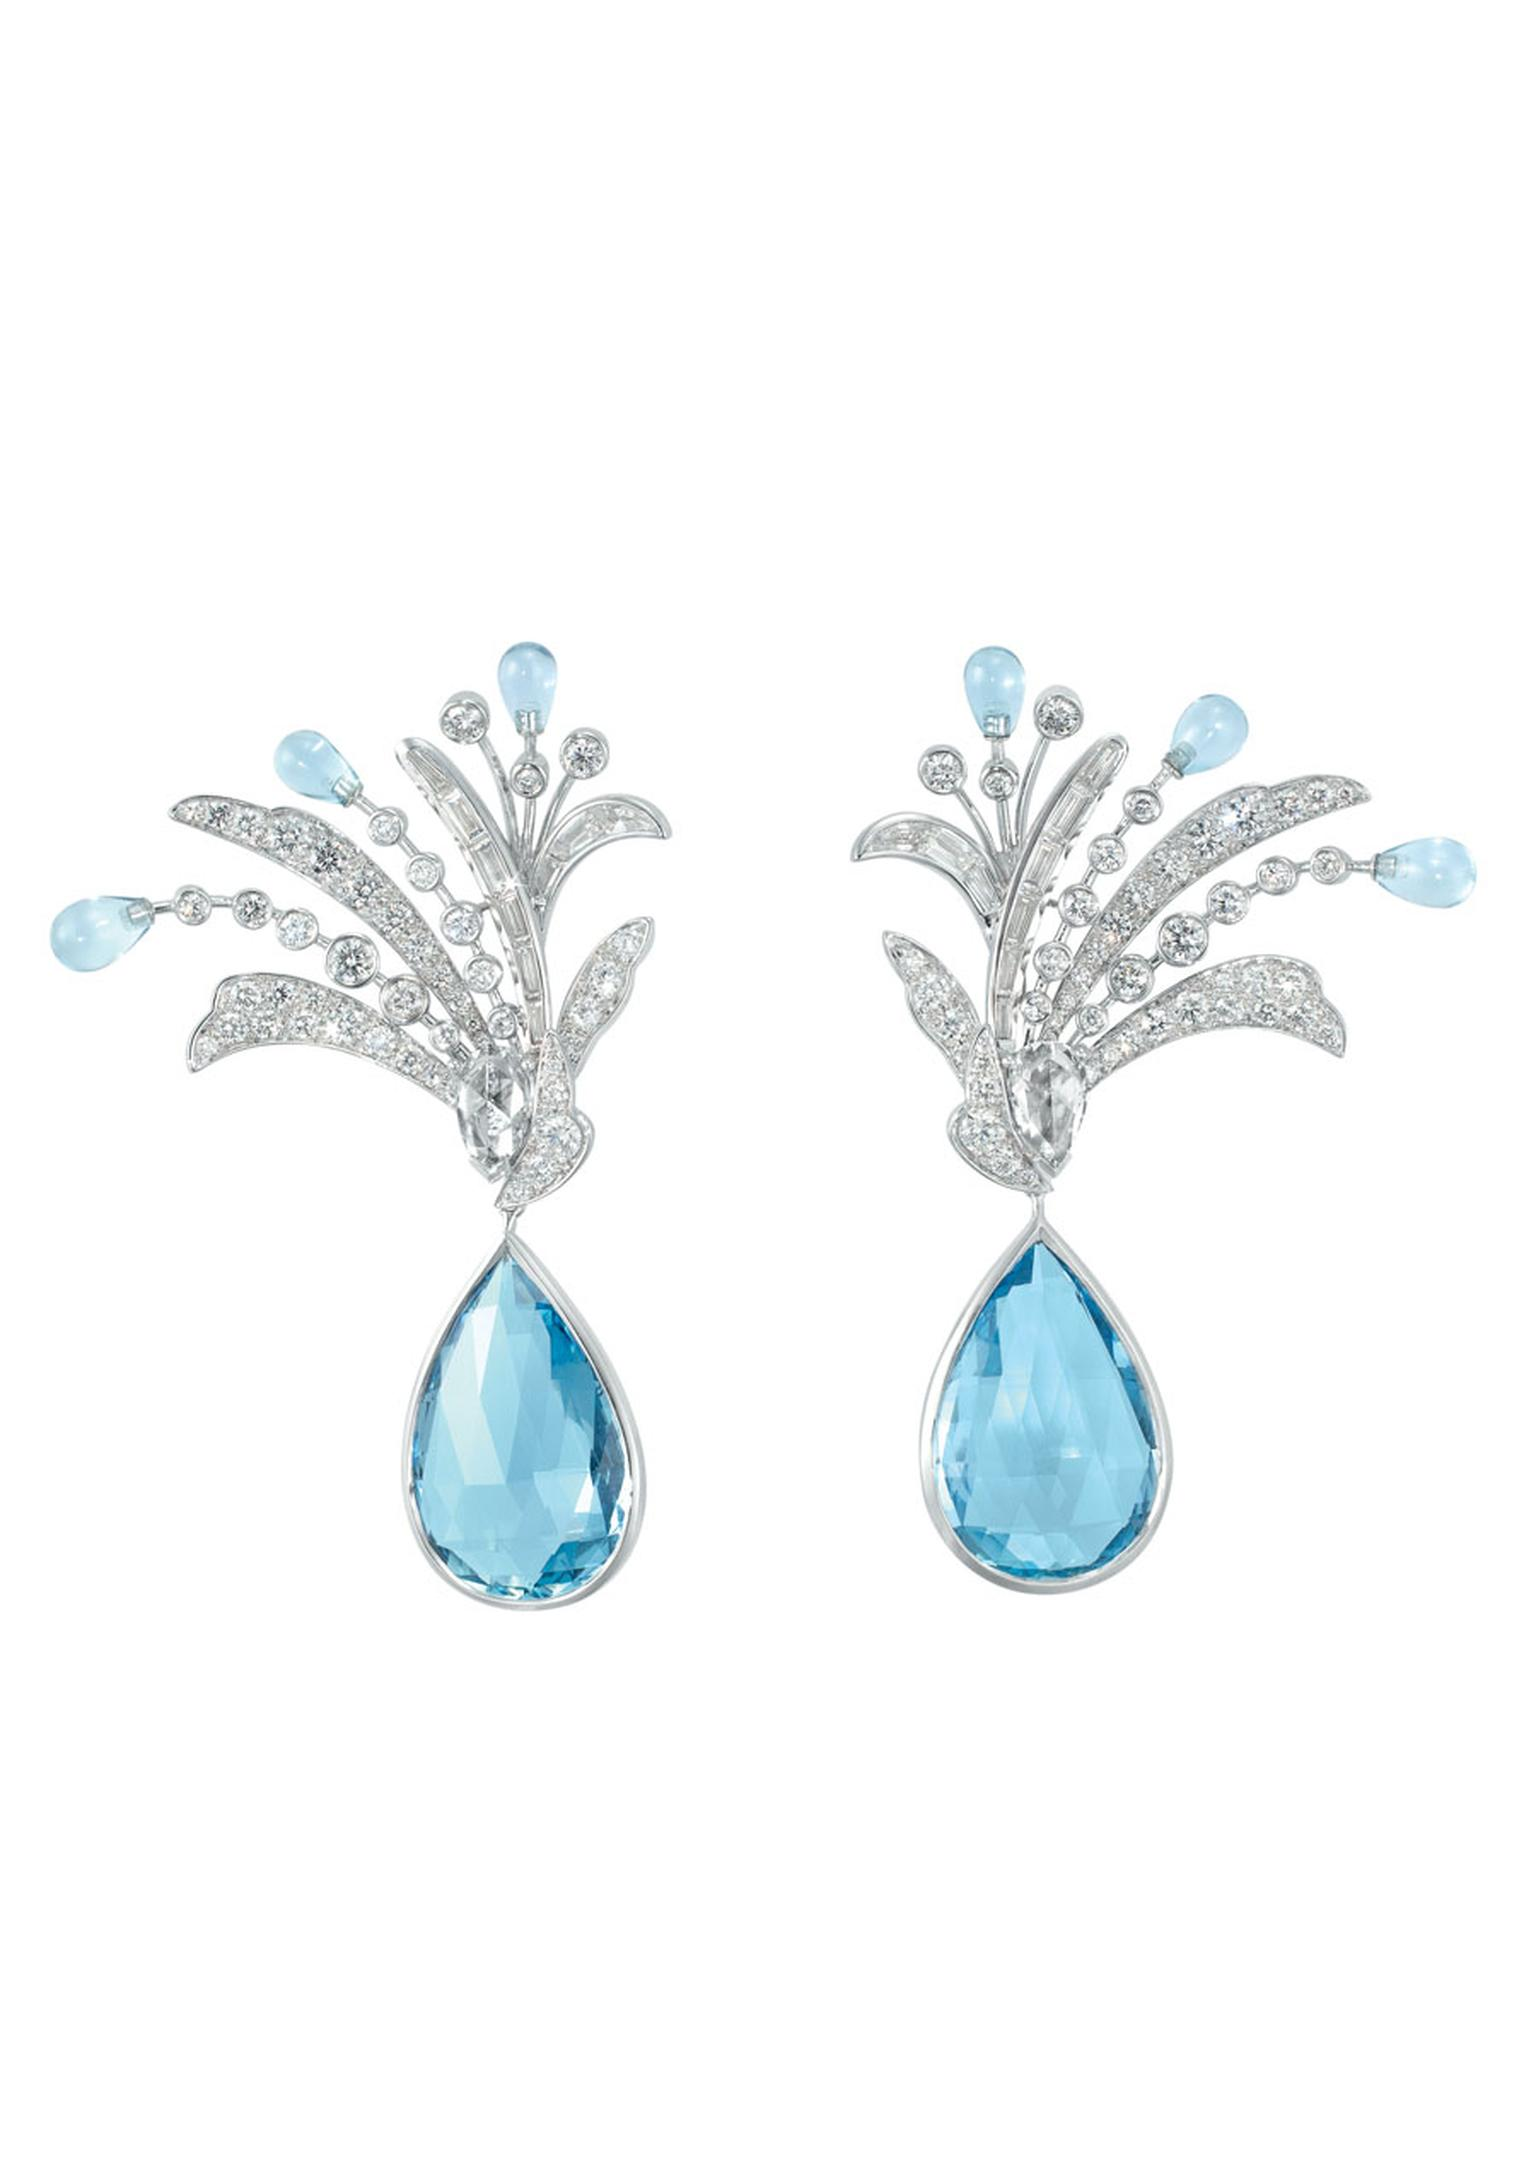 Boucheron Hotel de la Lumière Paon de Lune earrings in white gold, set with aquamarine and white diamonds.